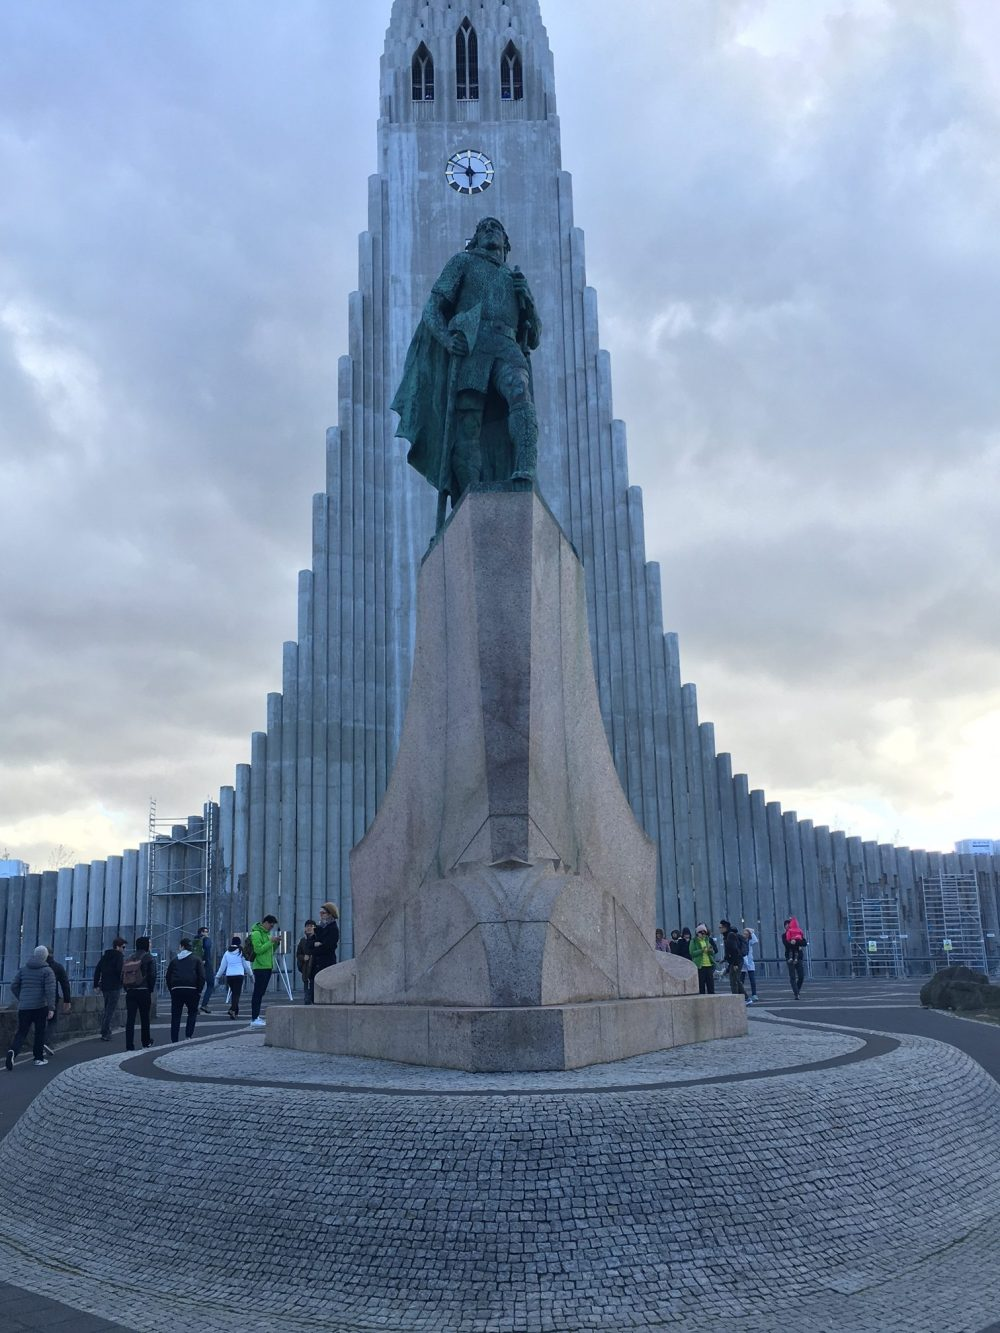 Hallgrimskirkja the most famous church in Reykjavik Iceland trip